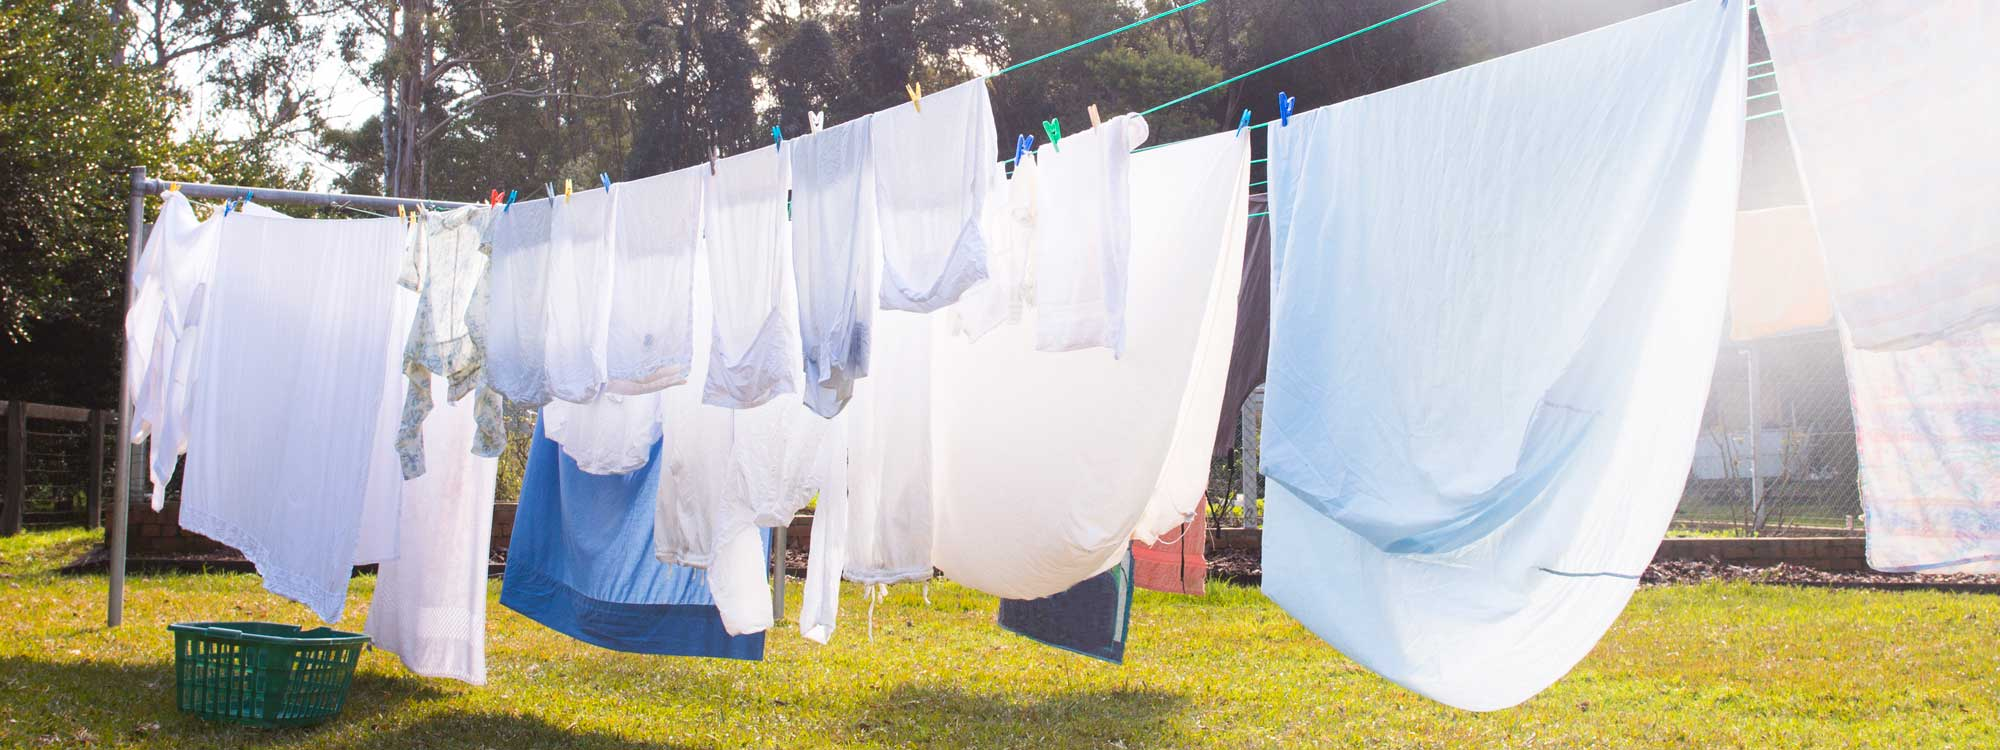 A lot of carbon emissions come from running the dryer. Save by hang drying!